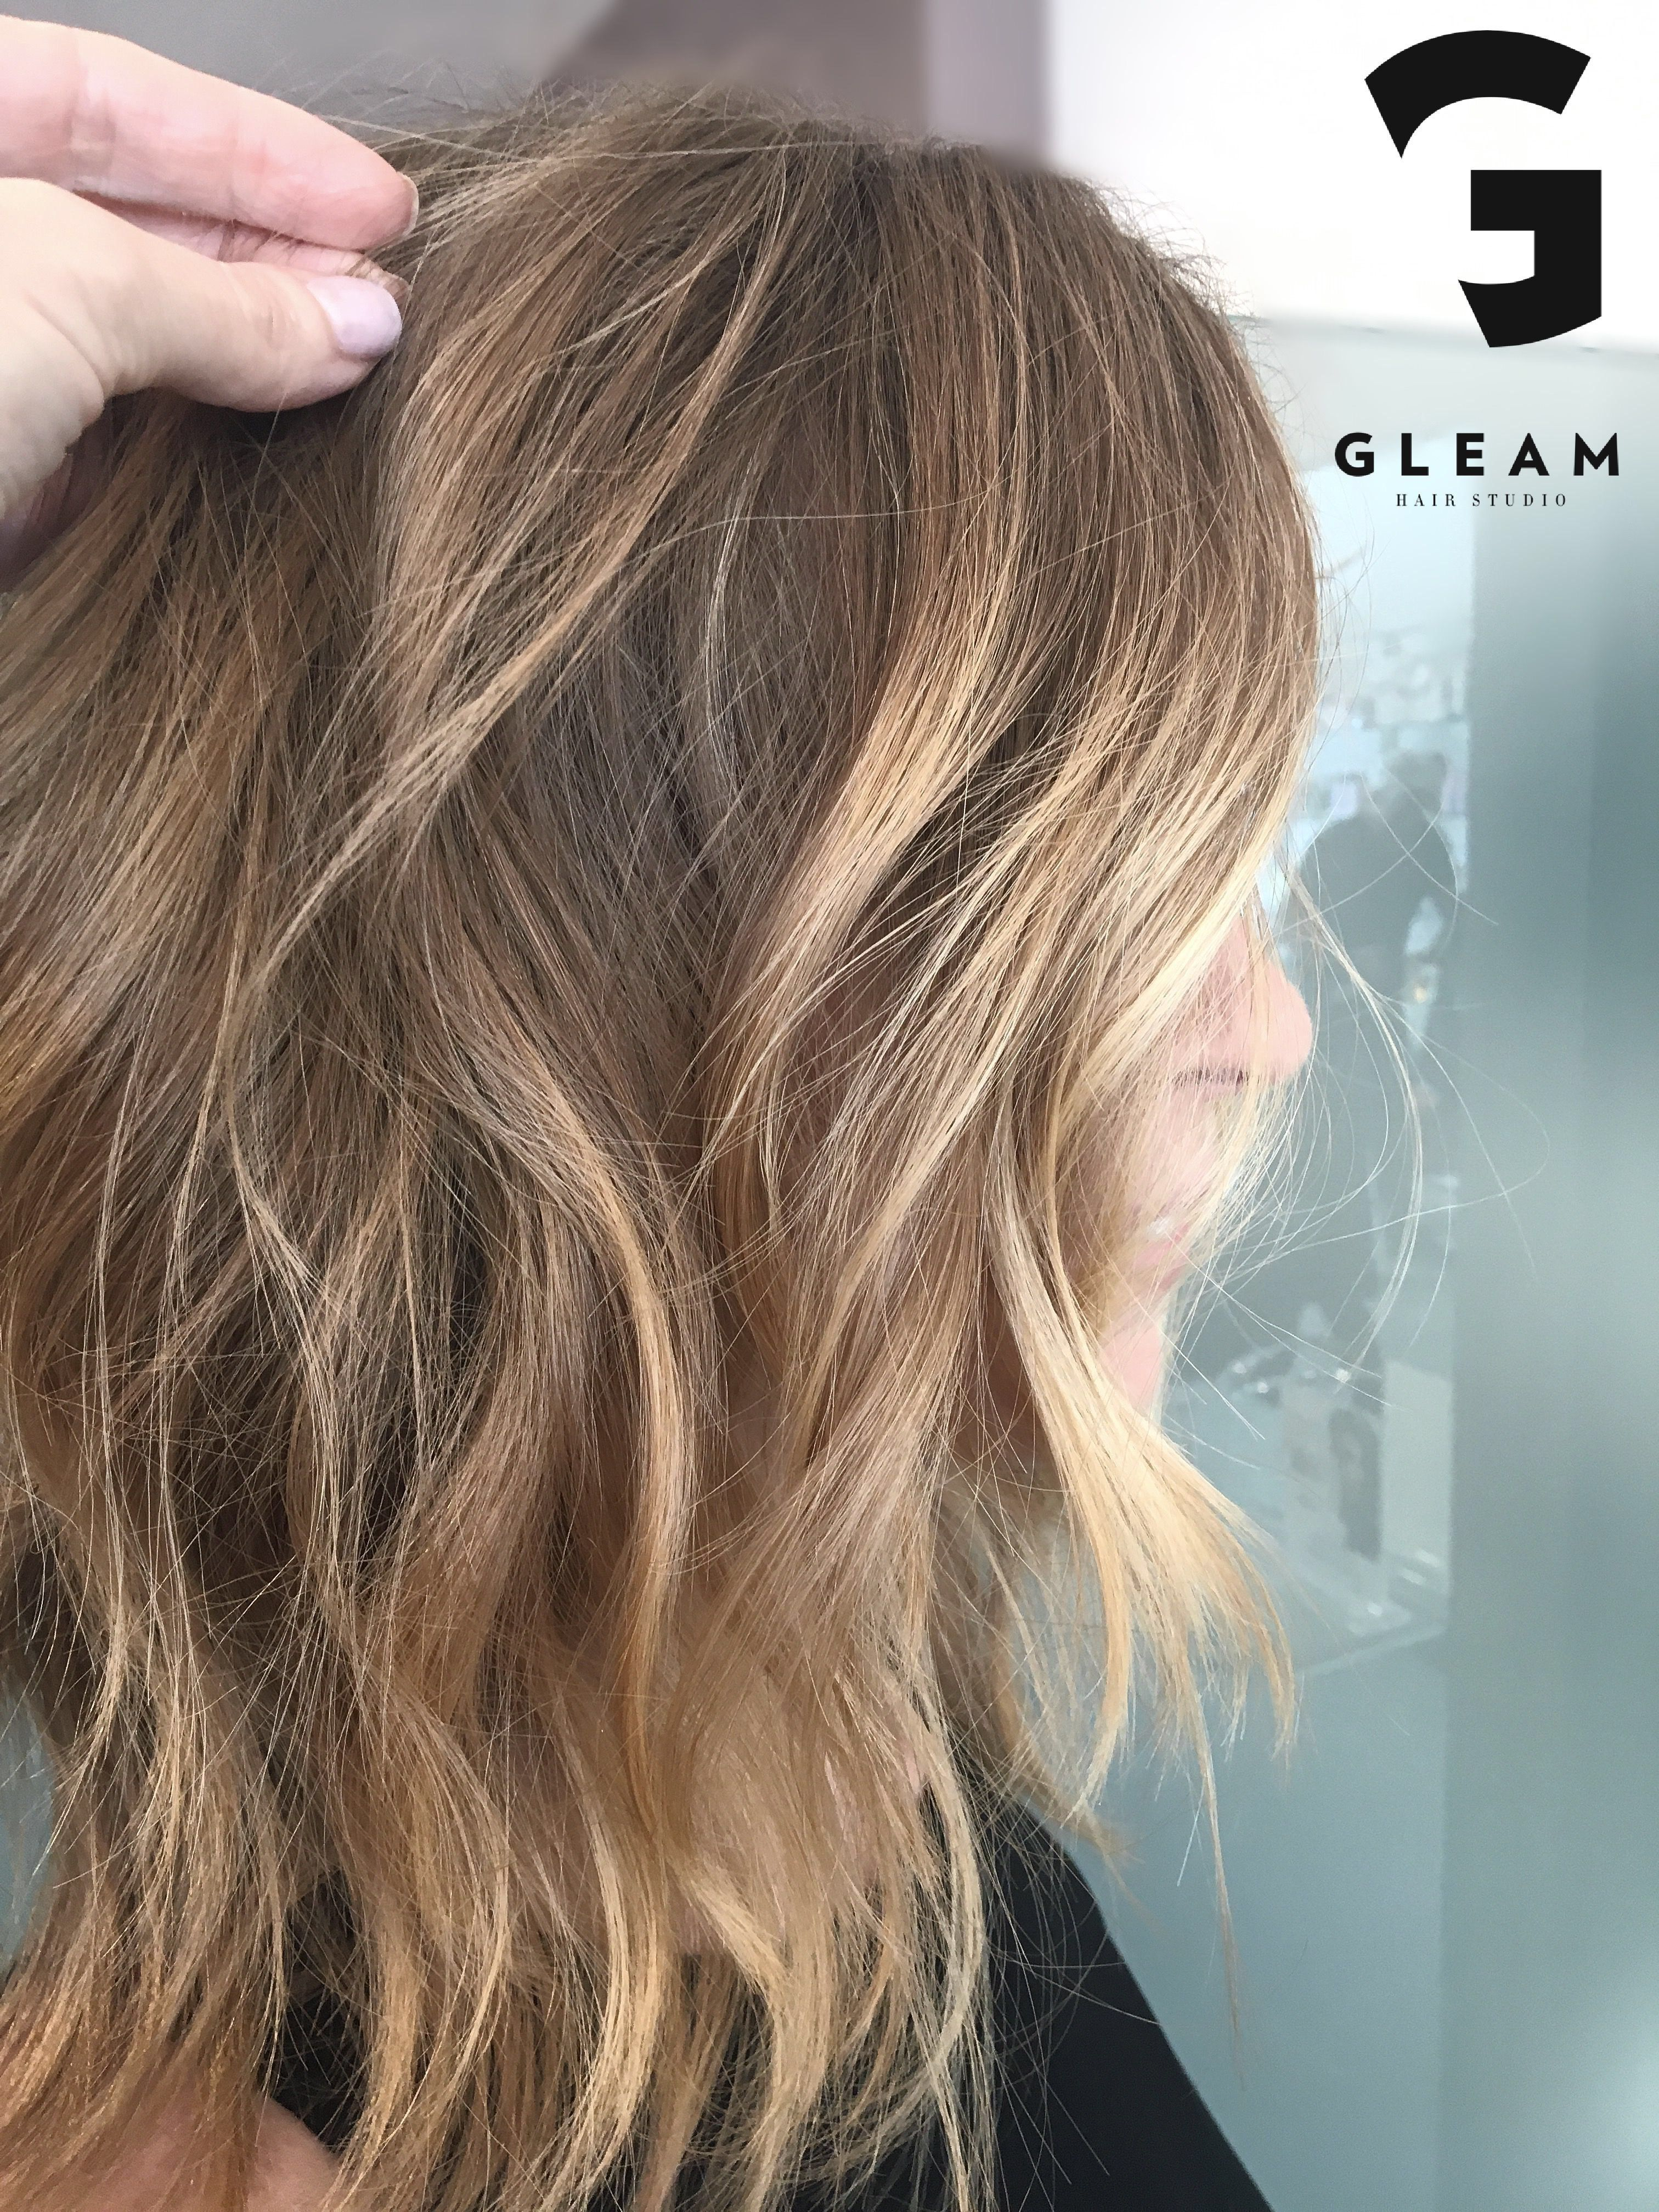 Perfect Textured Lob And Color By Stanley Gleam Hair Studio Miami Best Hair Salon Hair Top Hair Salon